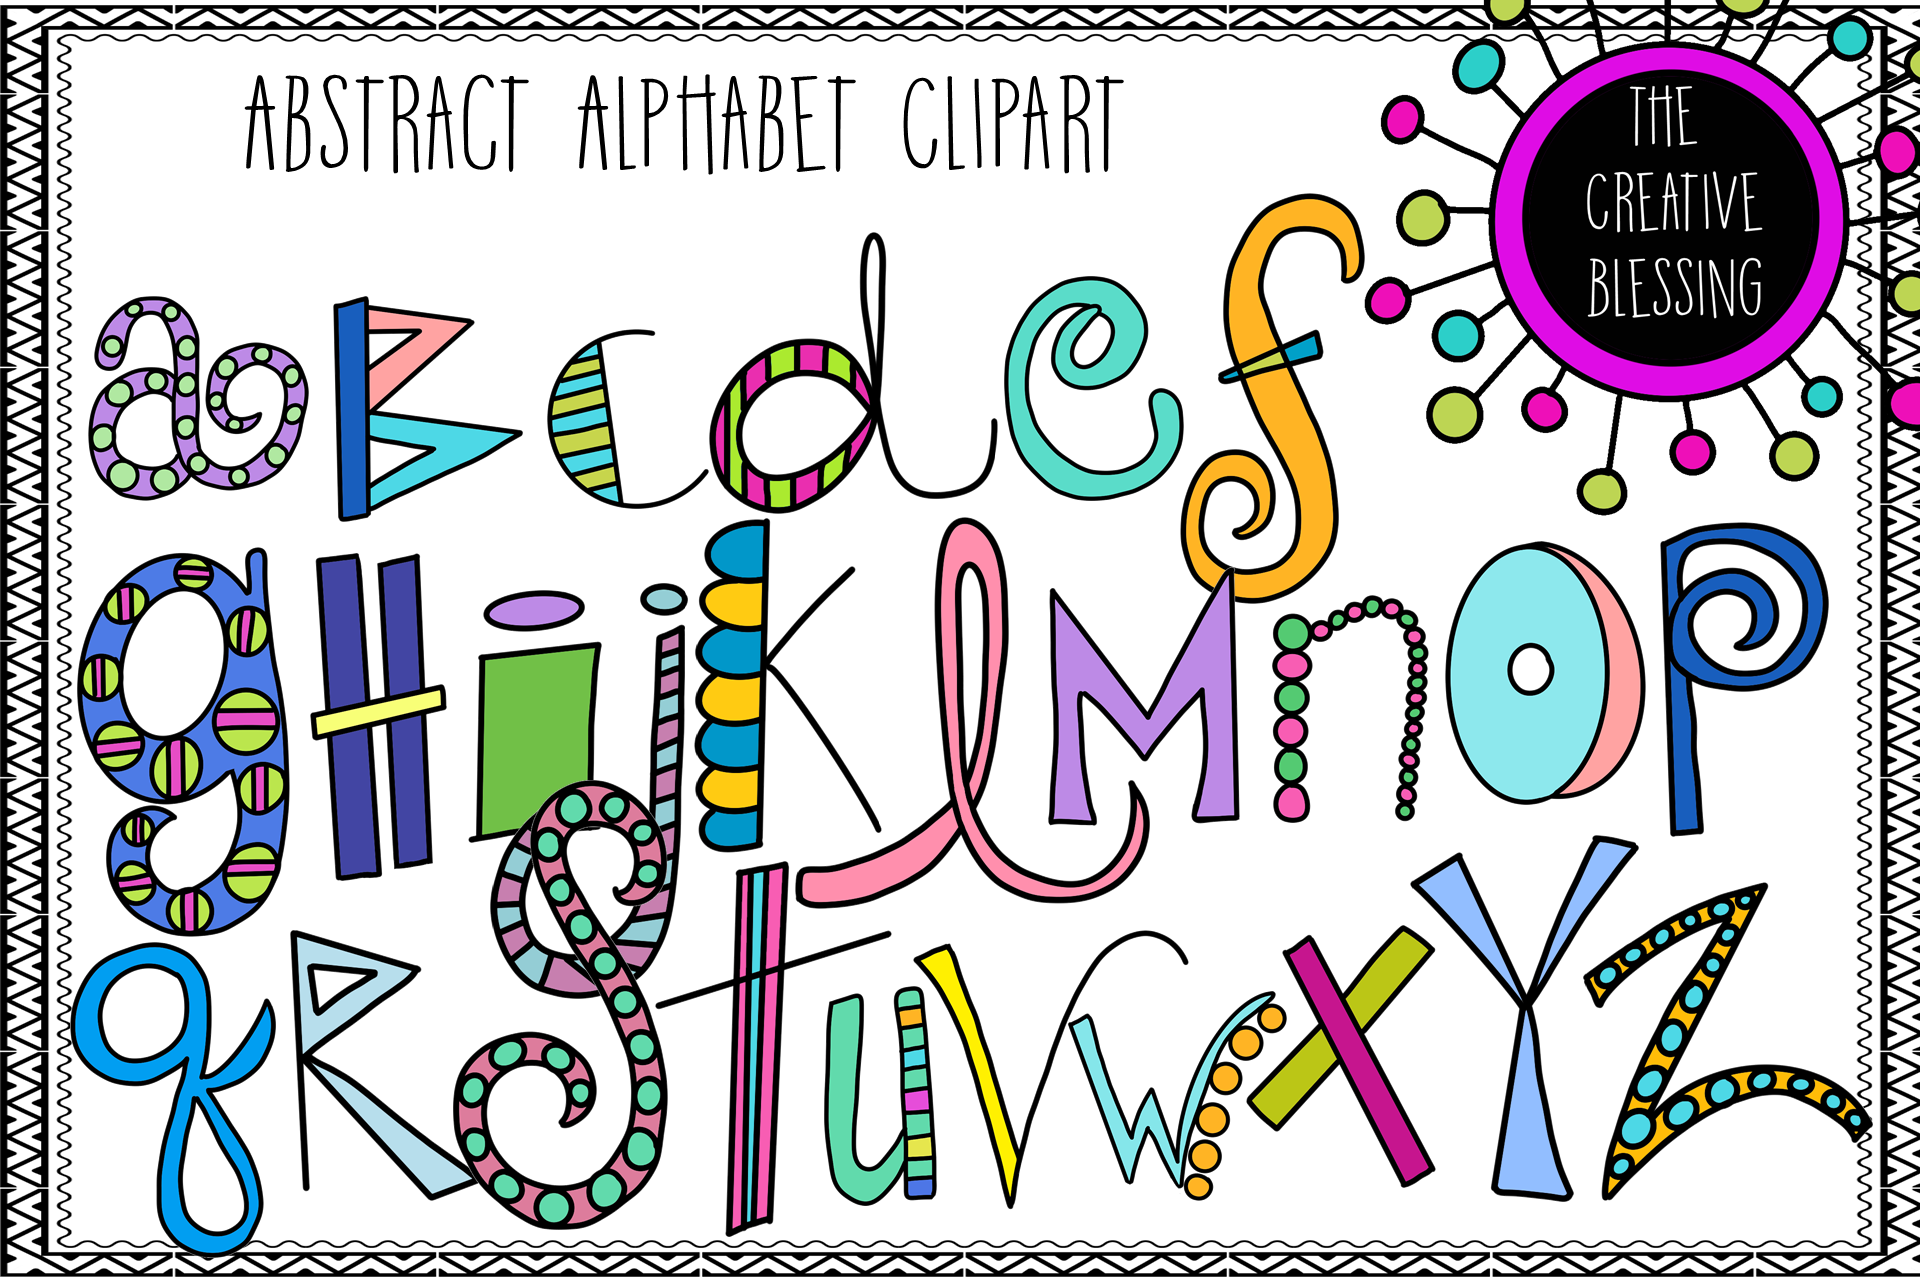 Images of alphabet clipart clip art black and white Abstract Alphabet Clipart clip art black and white